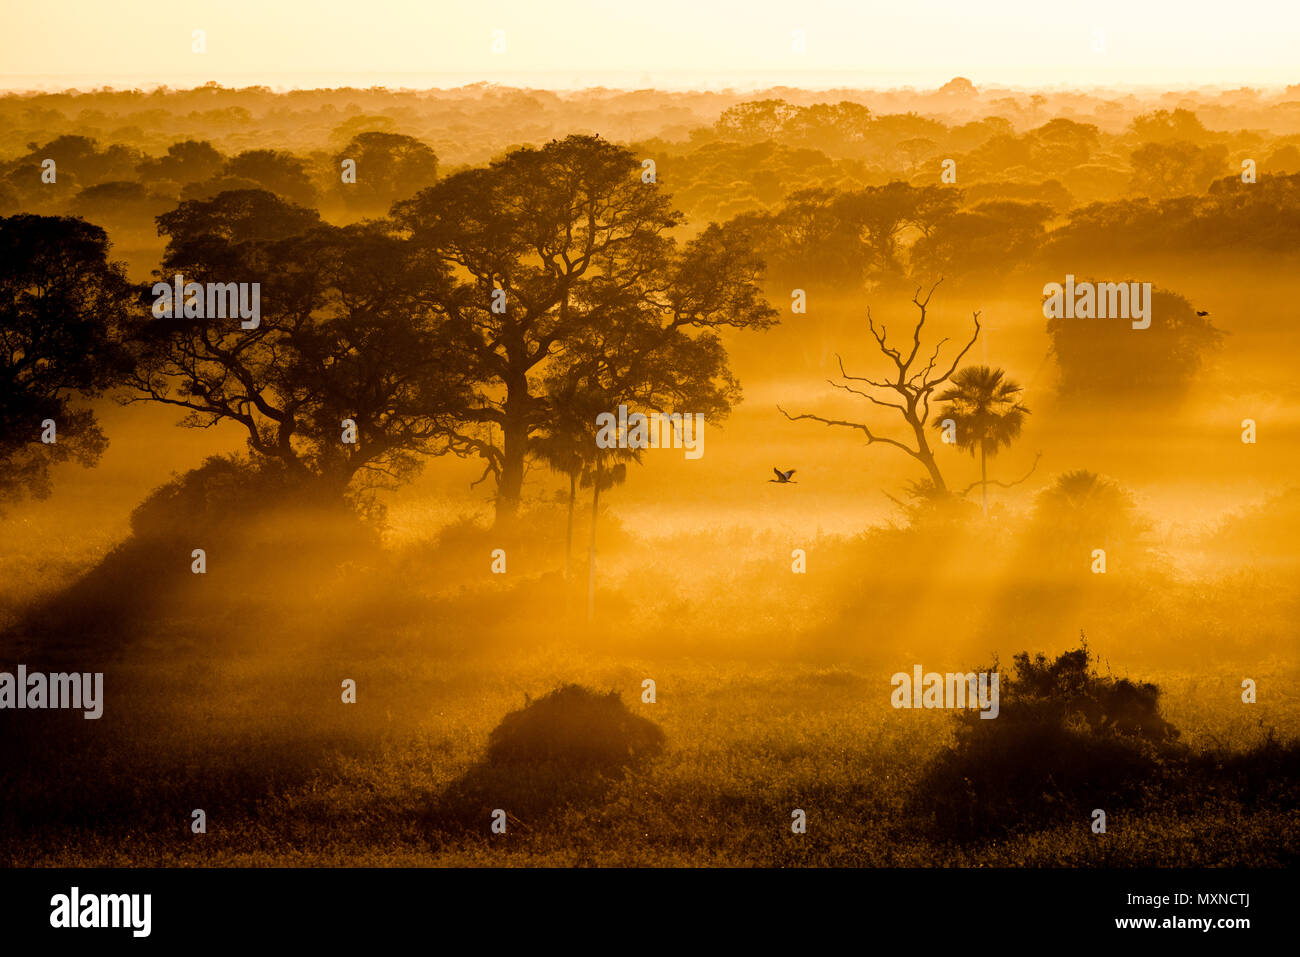 The Pantanal of Brazil at early morning - Stock Image